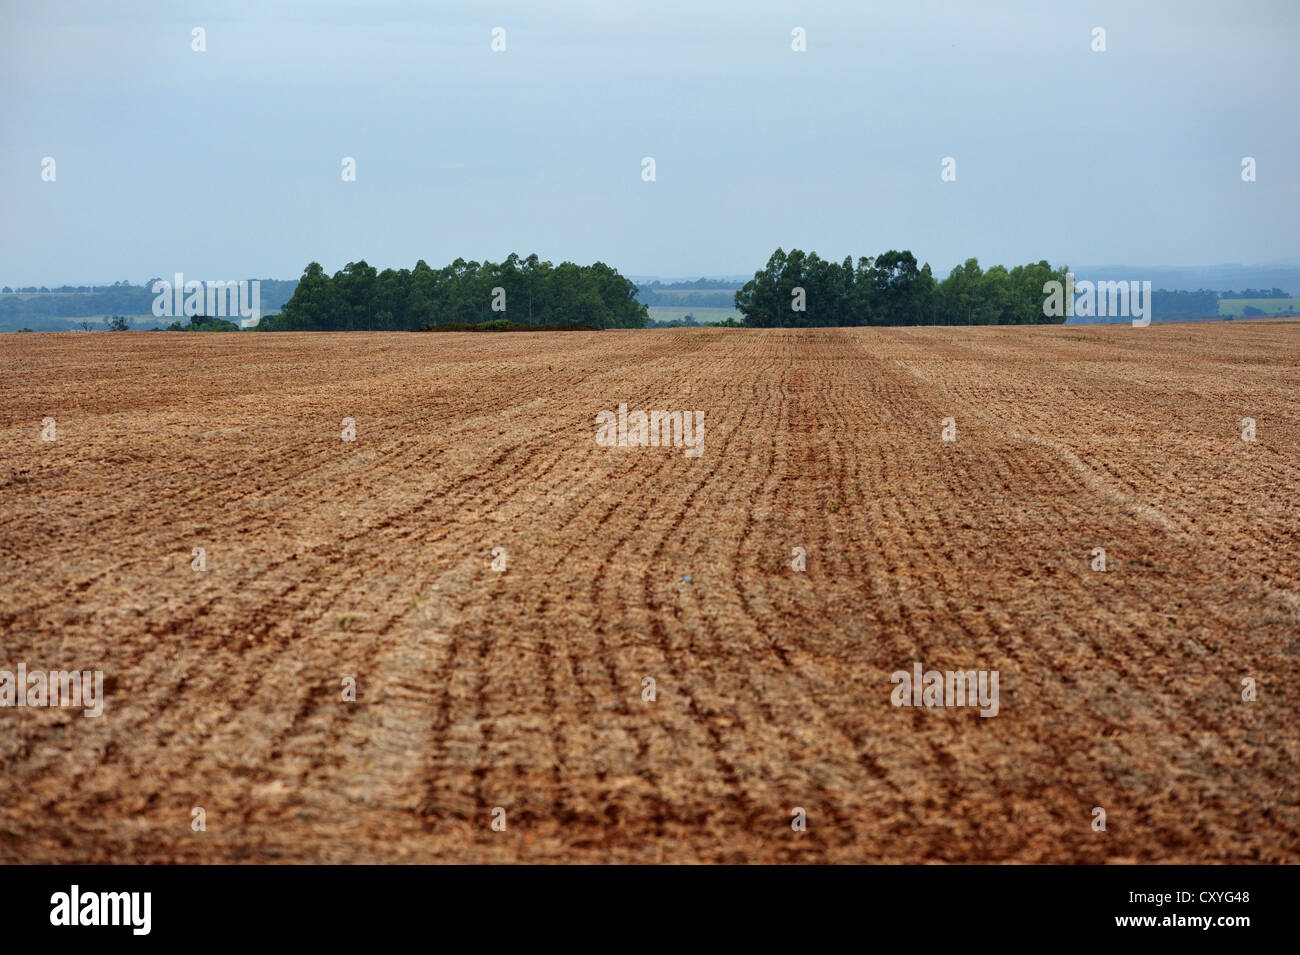 Plowed field owned by a large-scale landowner, remains of the original forest vegetation at the back, Alto Parana, - Stock Image